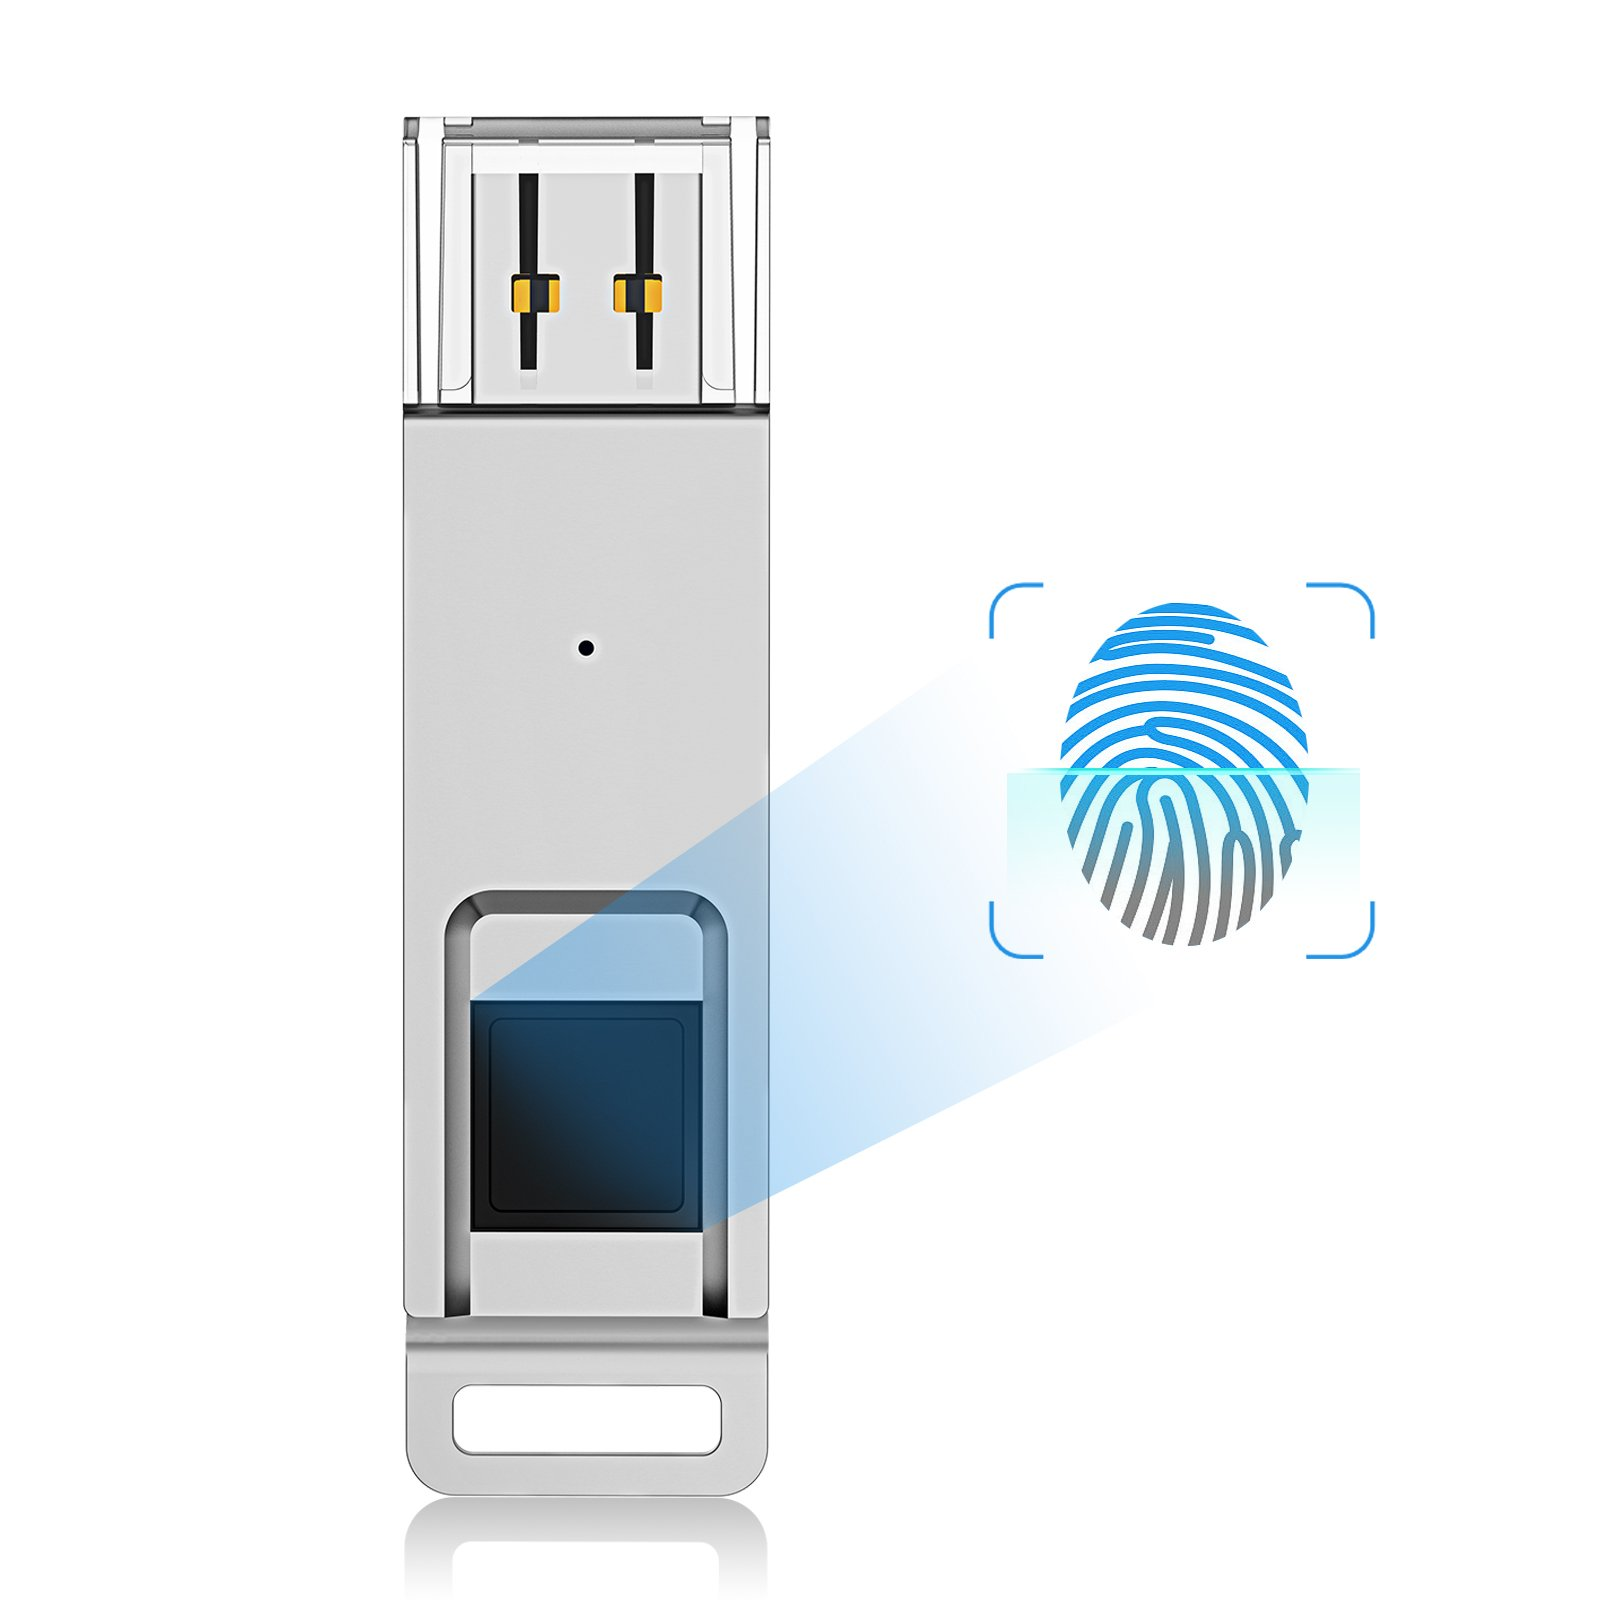 JUANWE Fingerprint USB Flash Drive 64GB, High Speed Recognition Encrypted USB 3.0 Security Protection Memory Stick - Silver